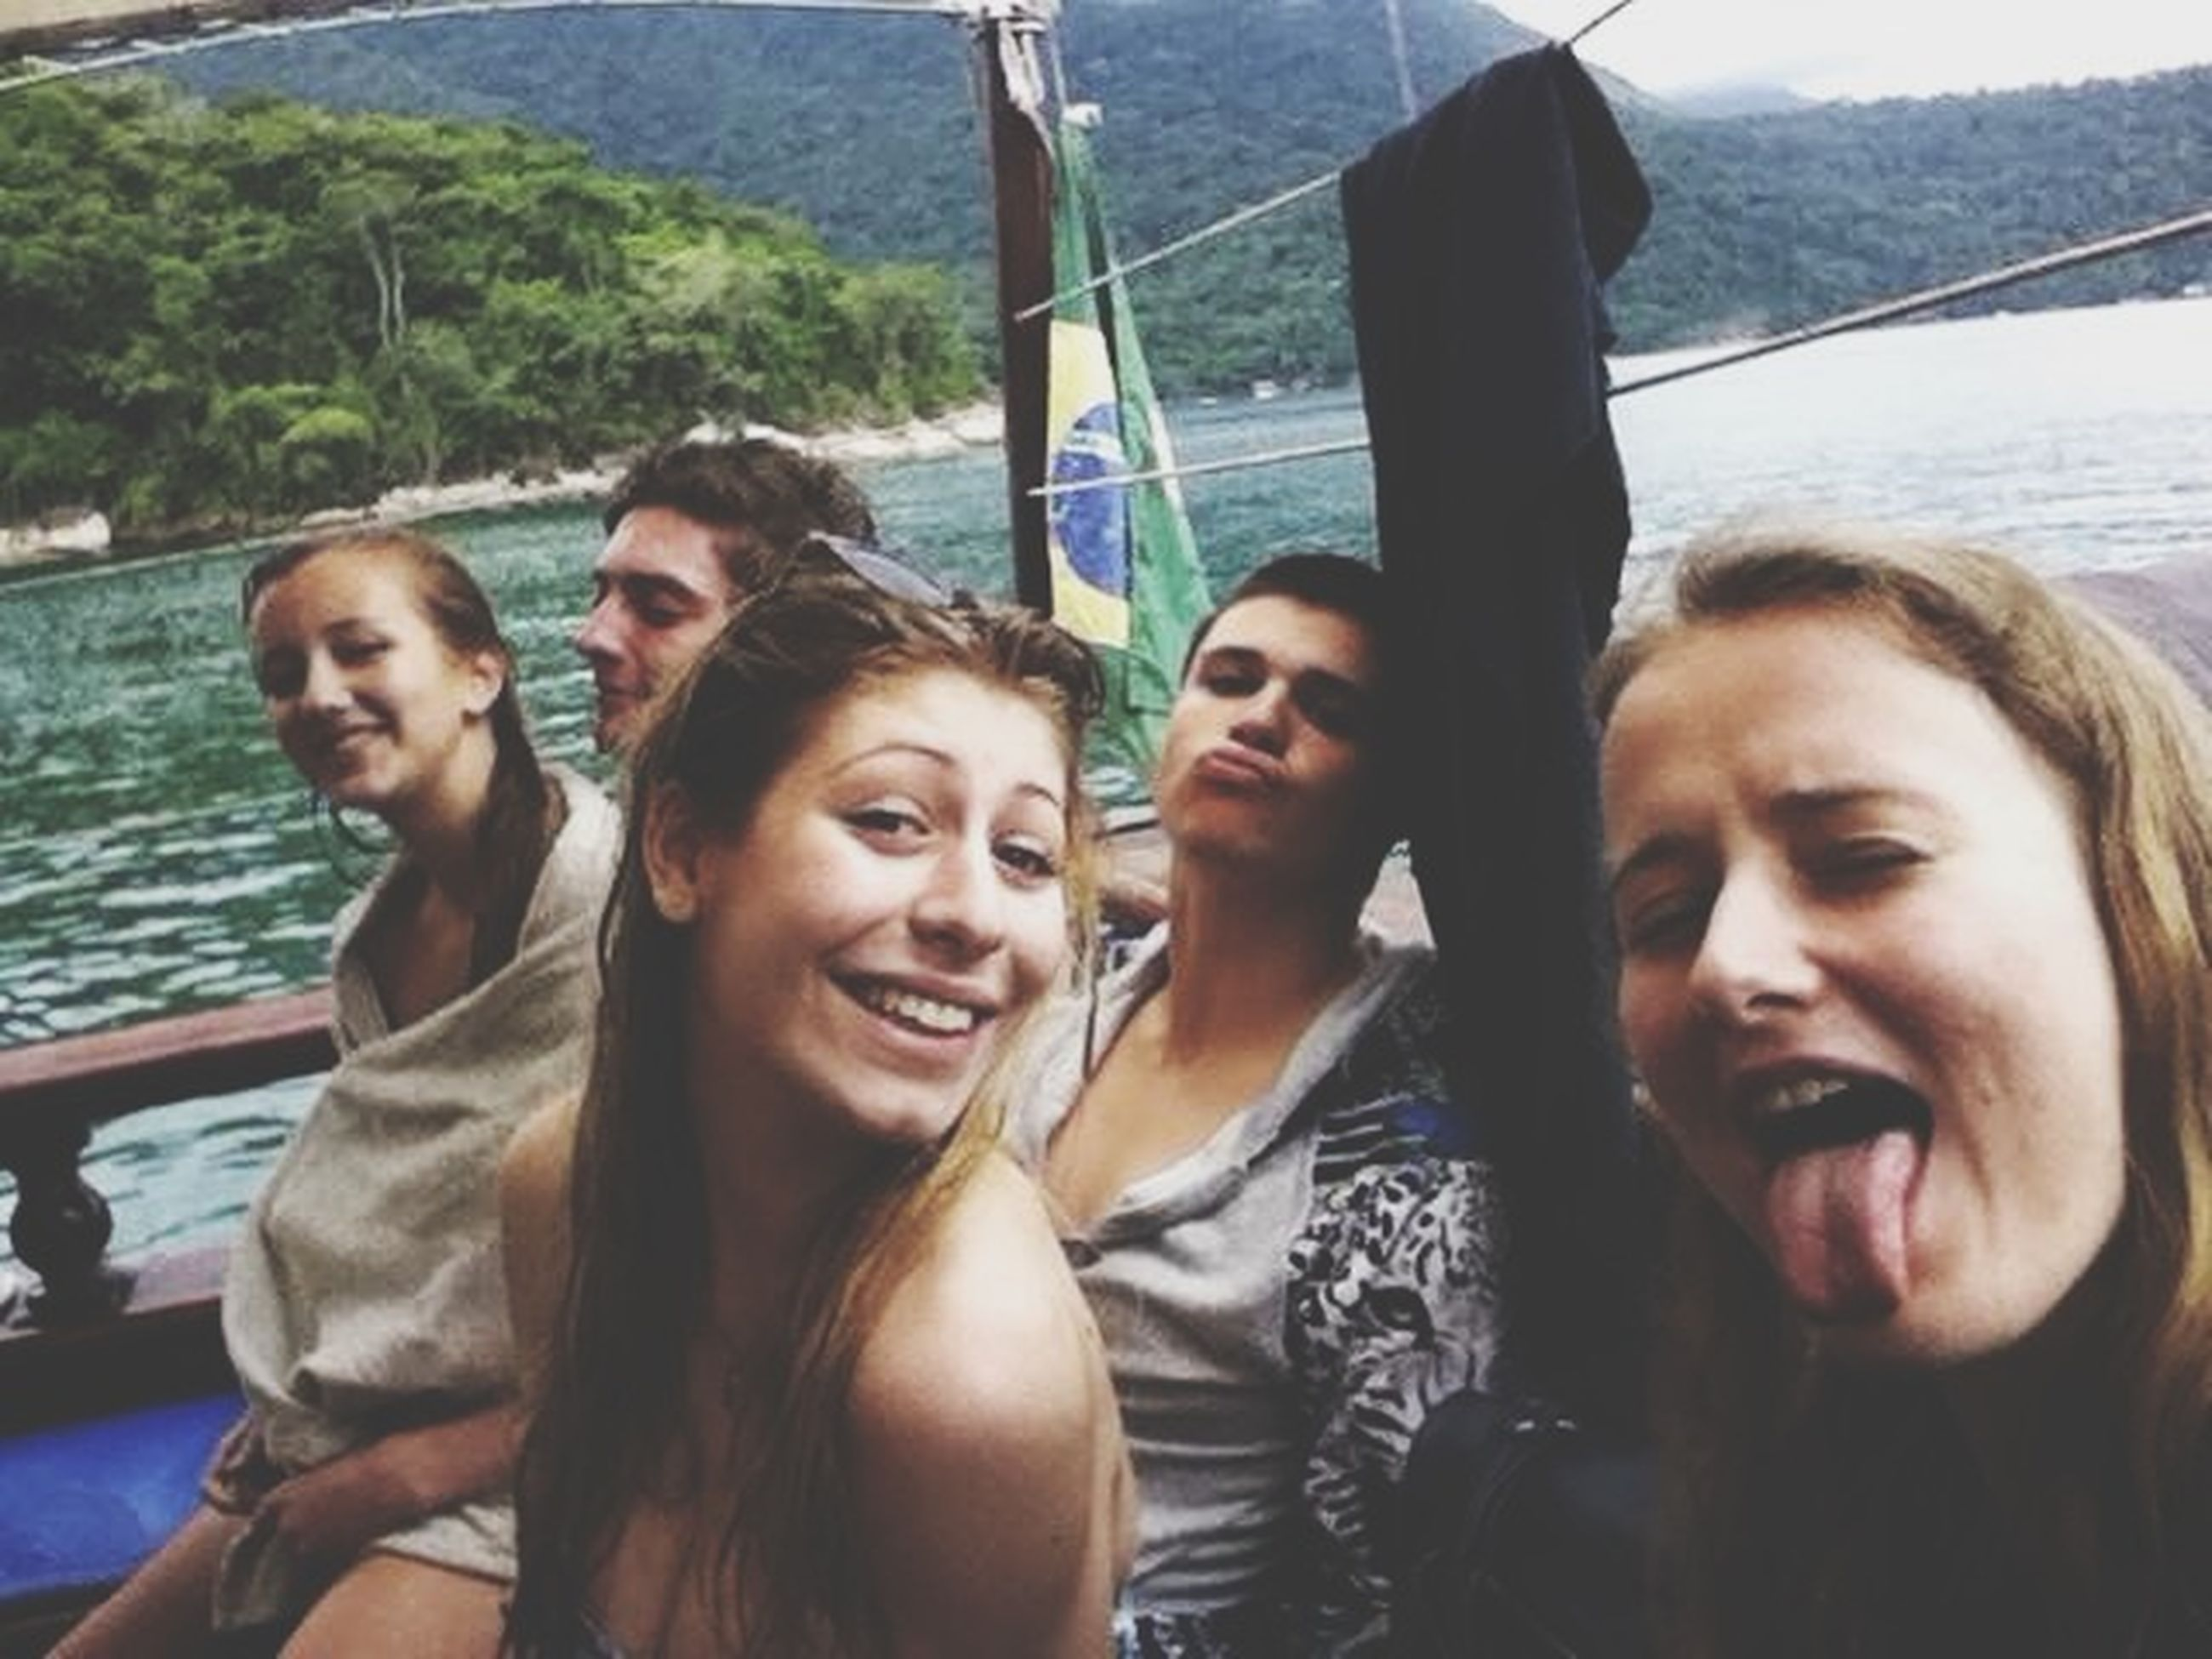 lifestyles, leisure activity, togetherness, water, person, bonding, happiness, love, smiling, young adult, young women, looking at camera, friendship, portrait, enjoyment, vacations, casual clothing, toothy smile